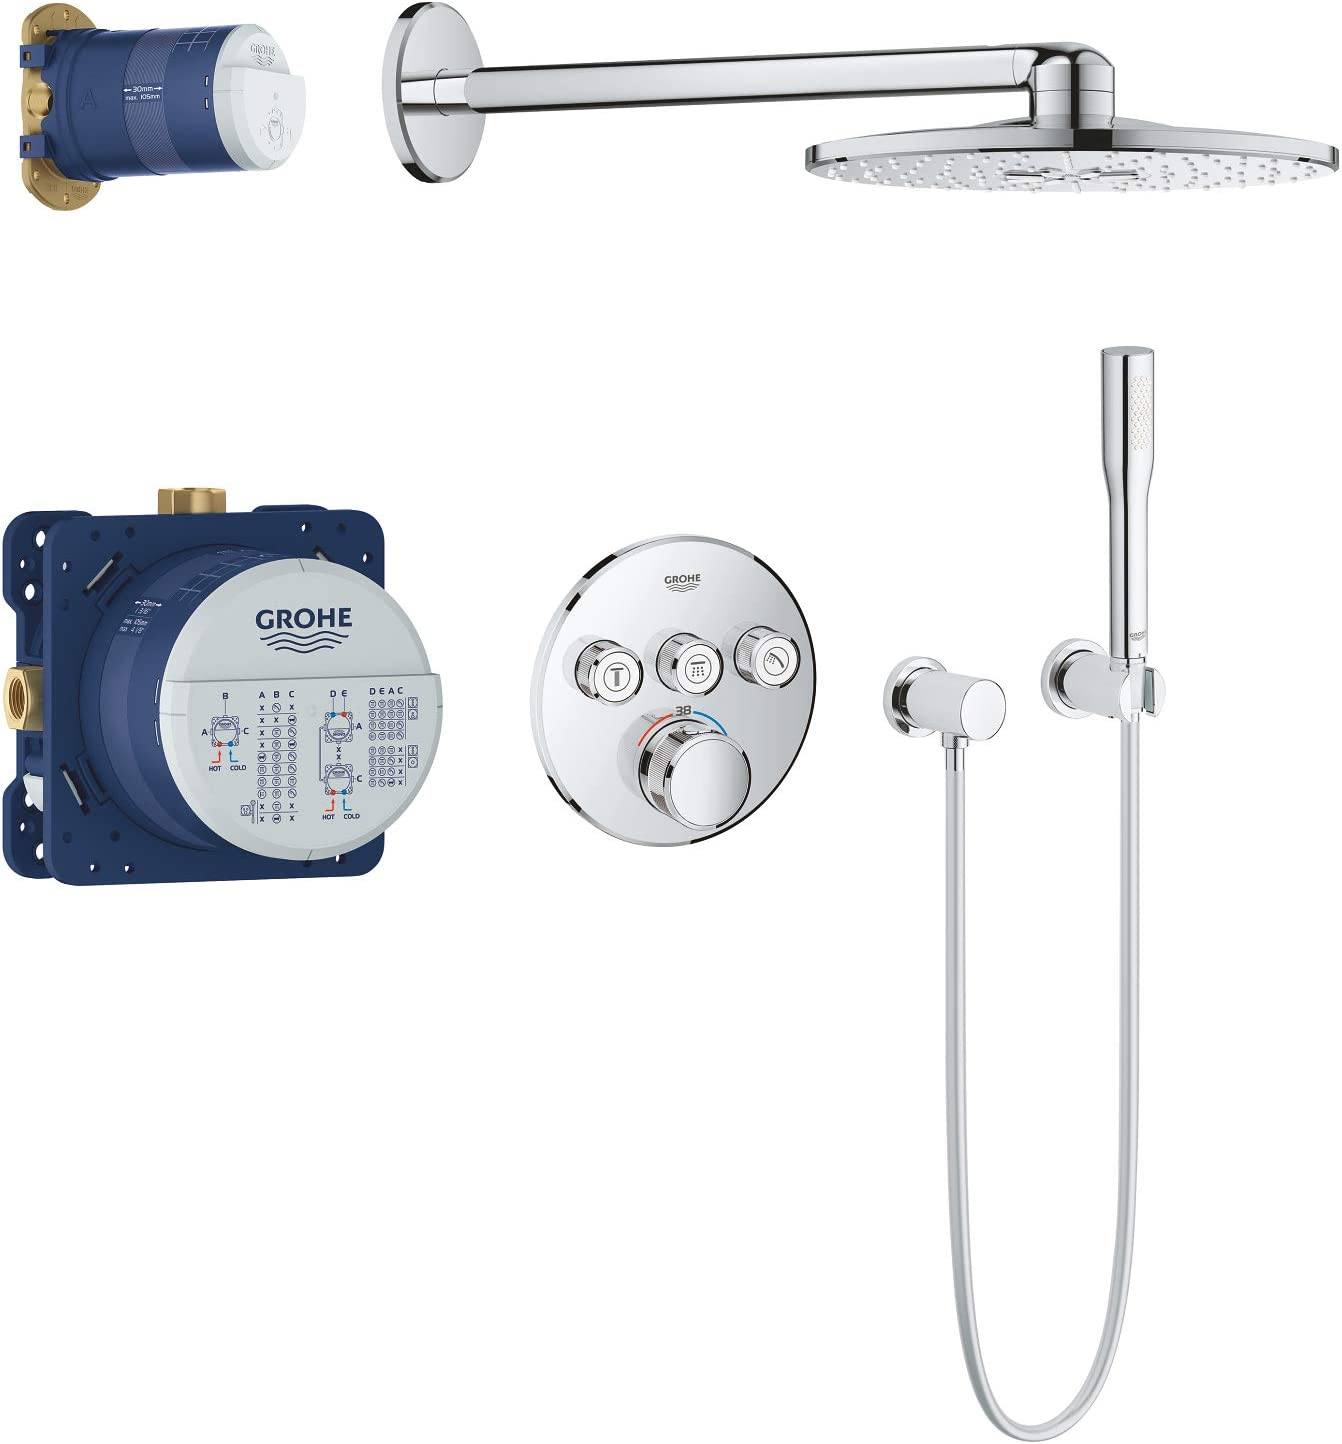 GROHE 34705000 Round Grohtherm Smart Control Perfect Set with Rain Shower 310, Chrome